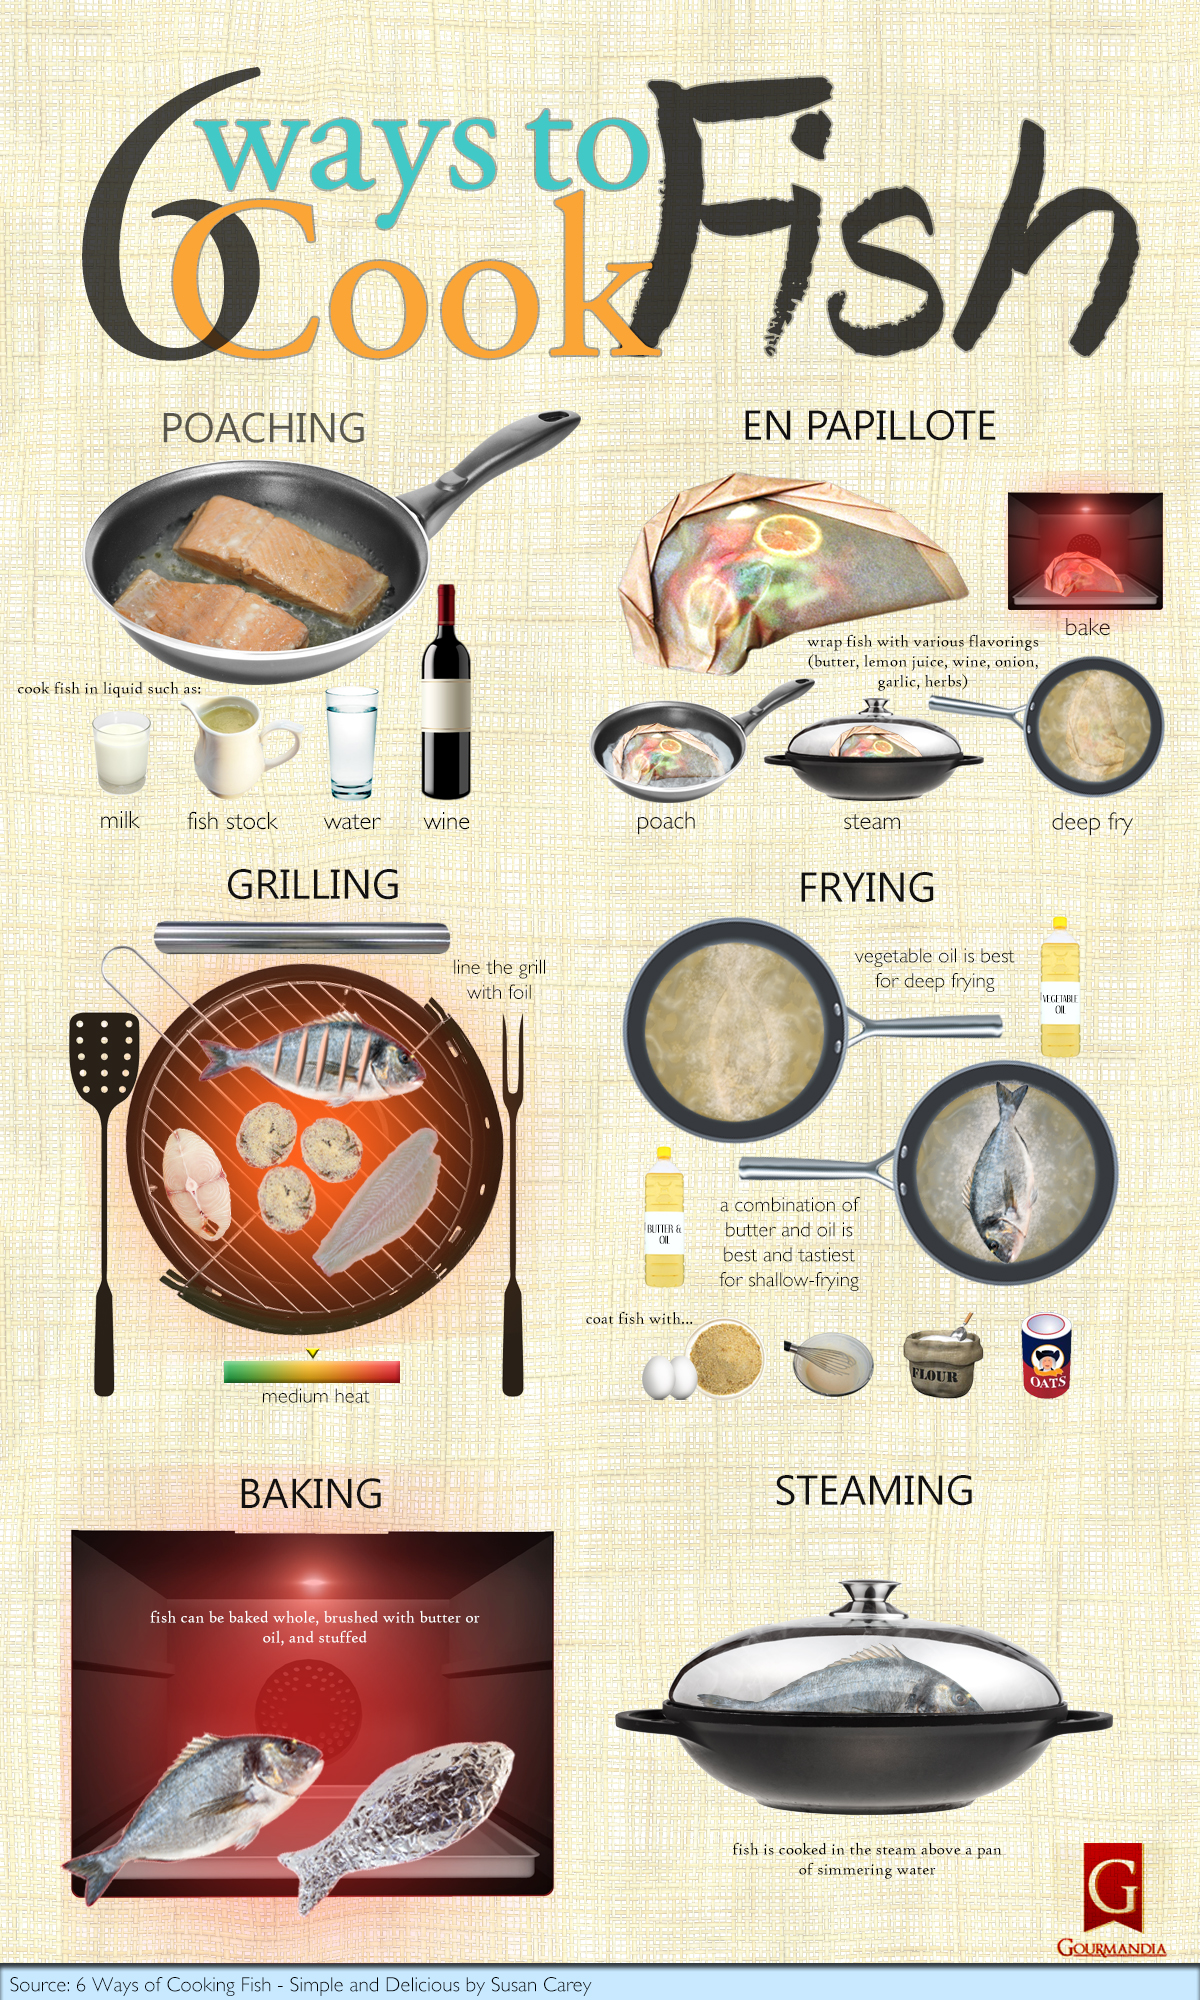 Ways to cook fish 6 timeless techniques to cook fish for How to make fish